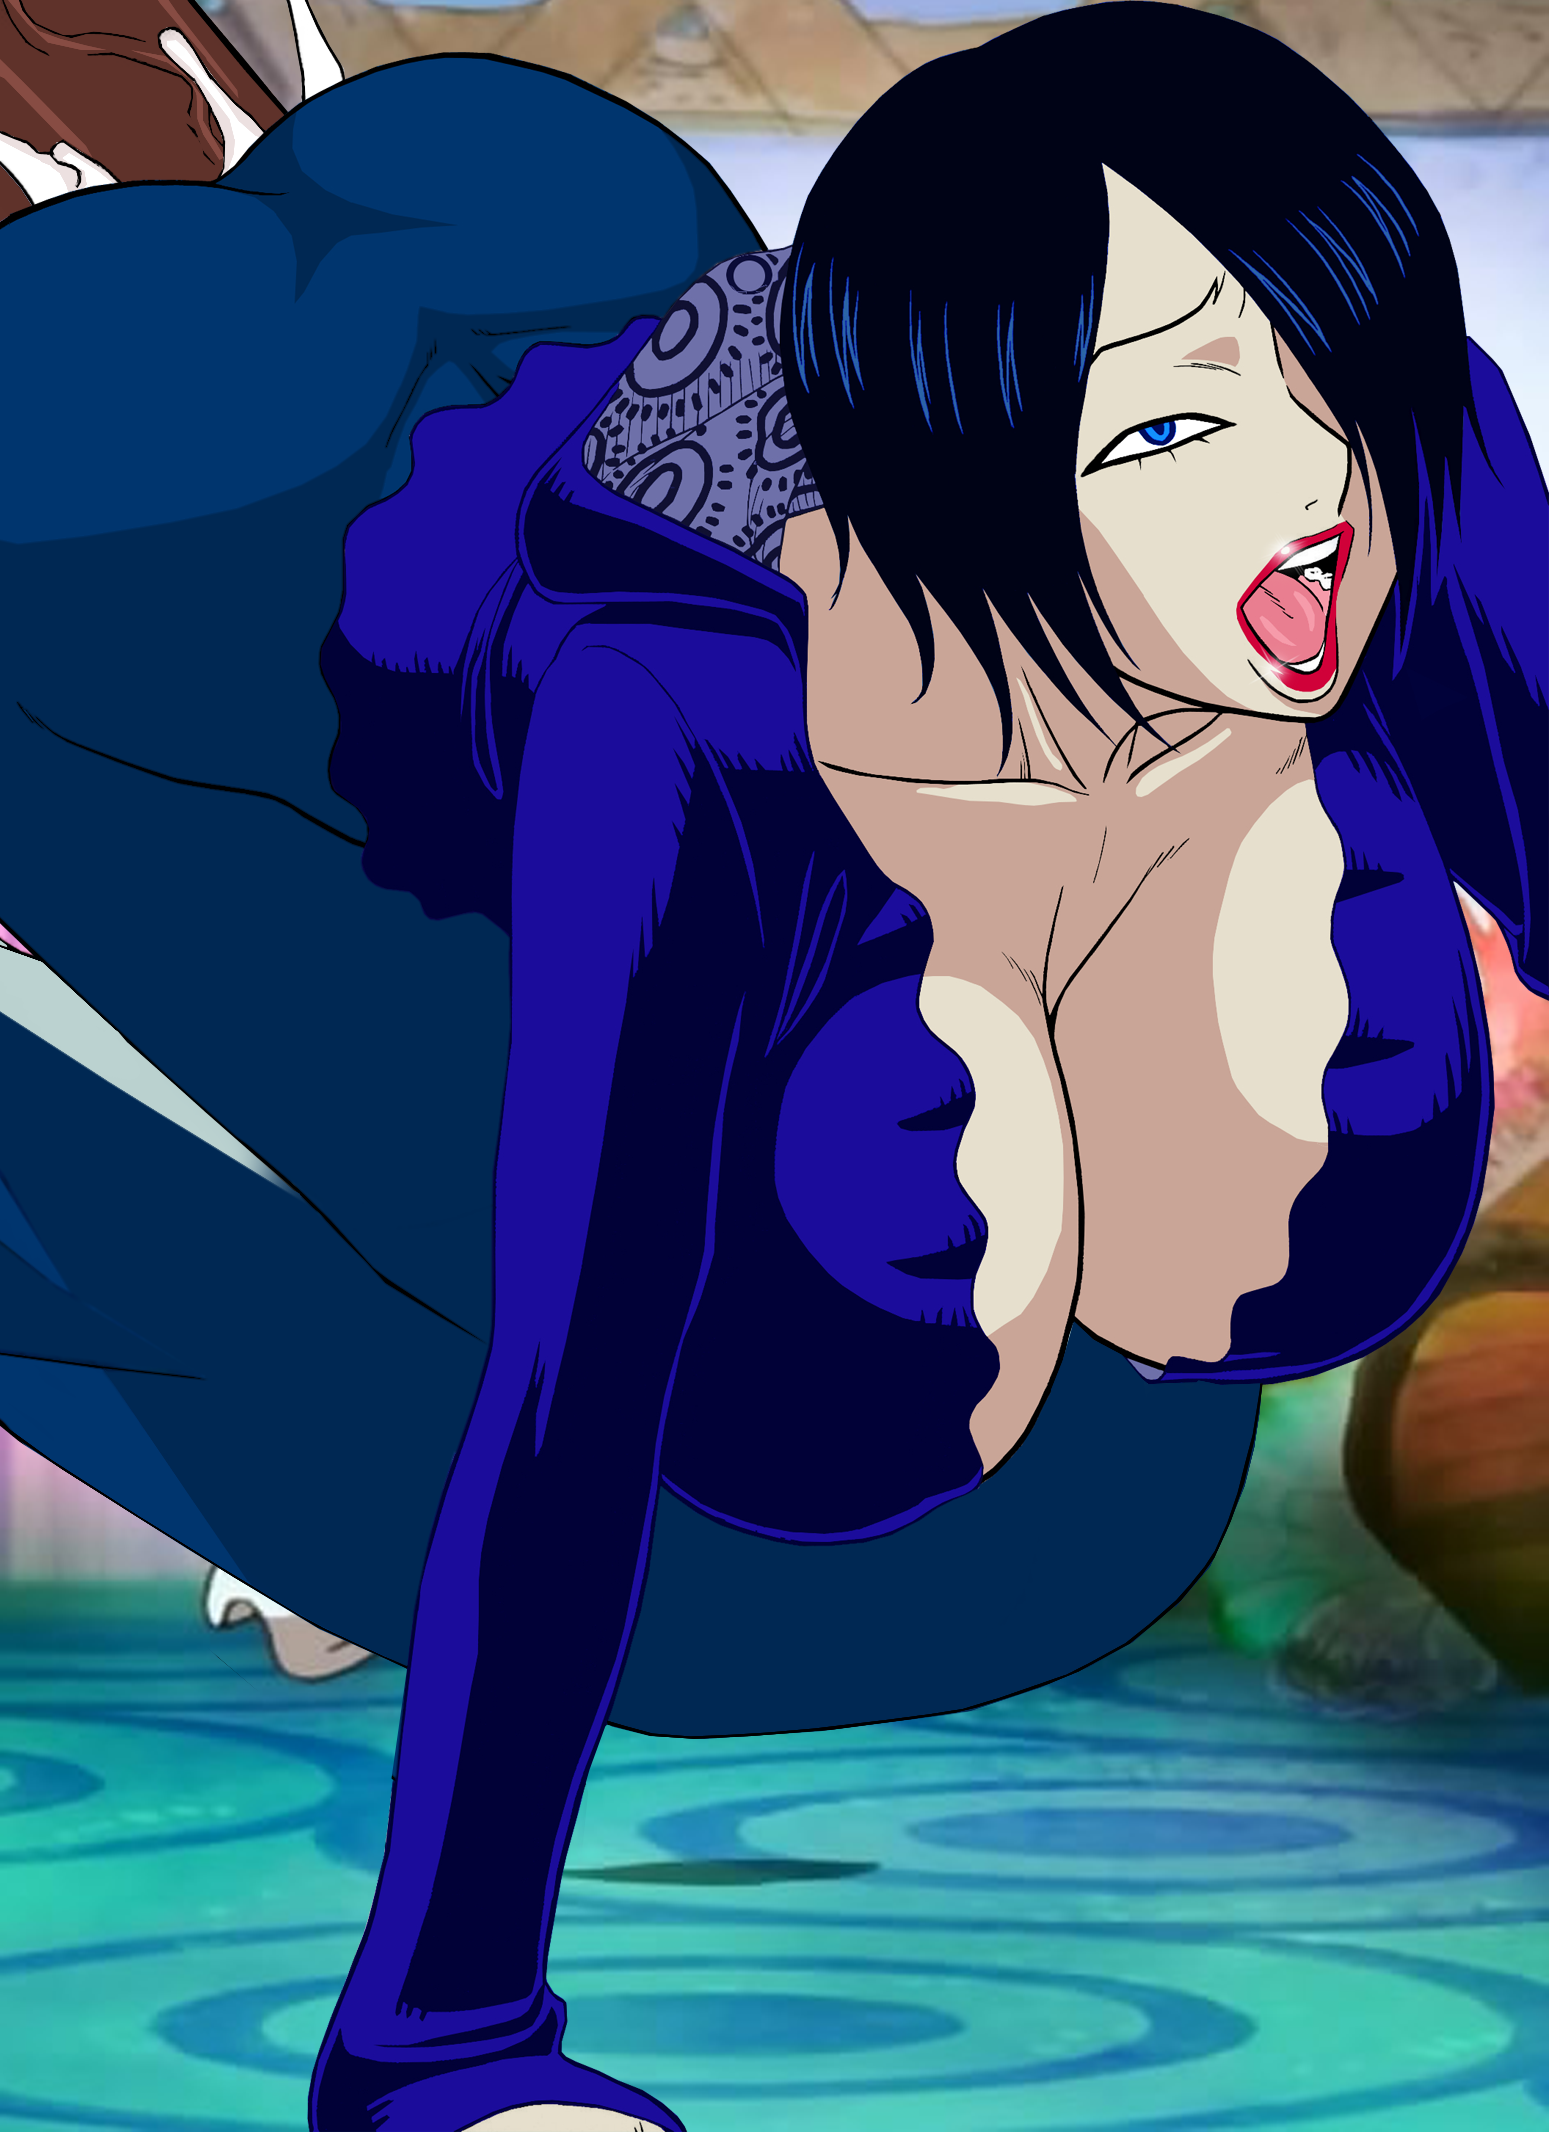 Toon sex pic ##0001301311934 madame shyarly one piece tagme